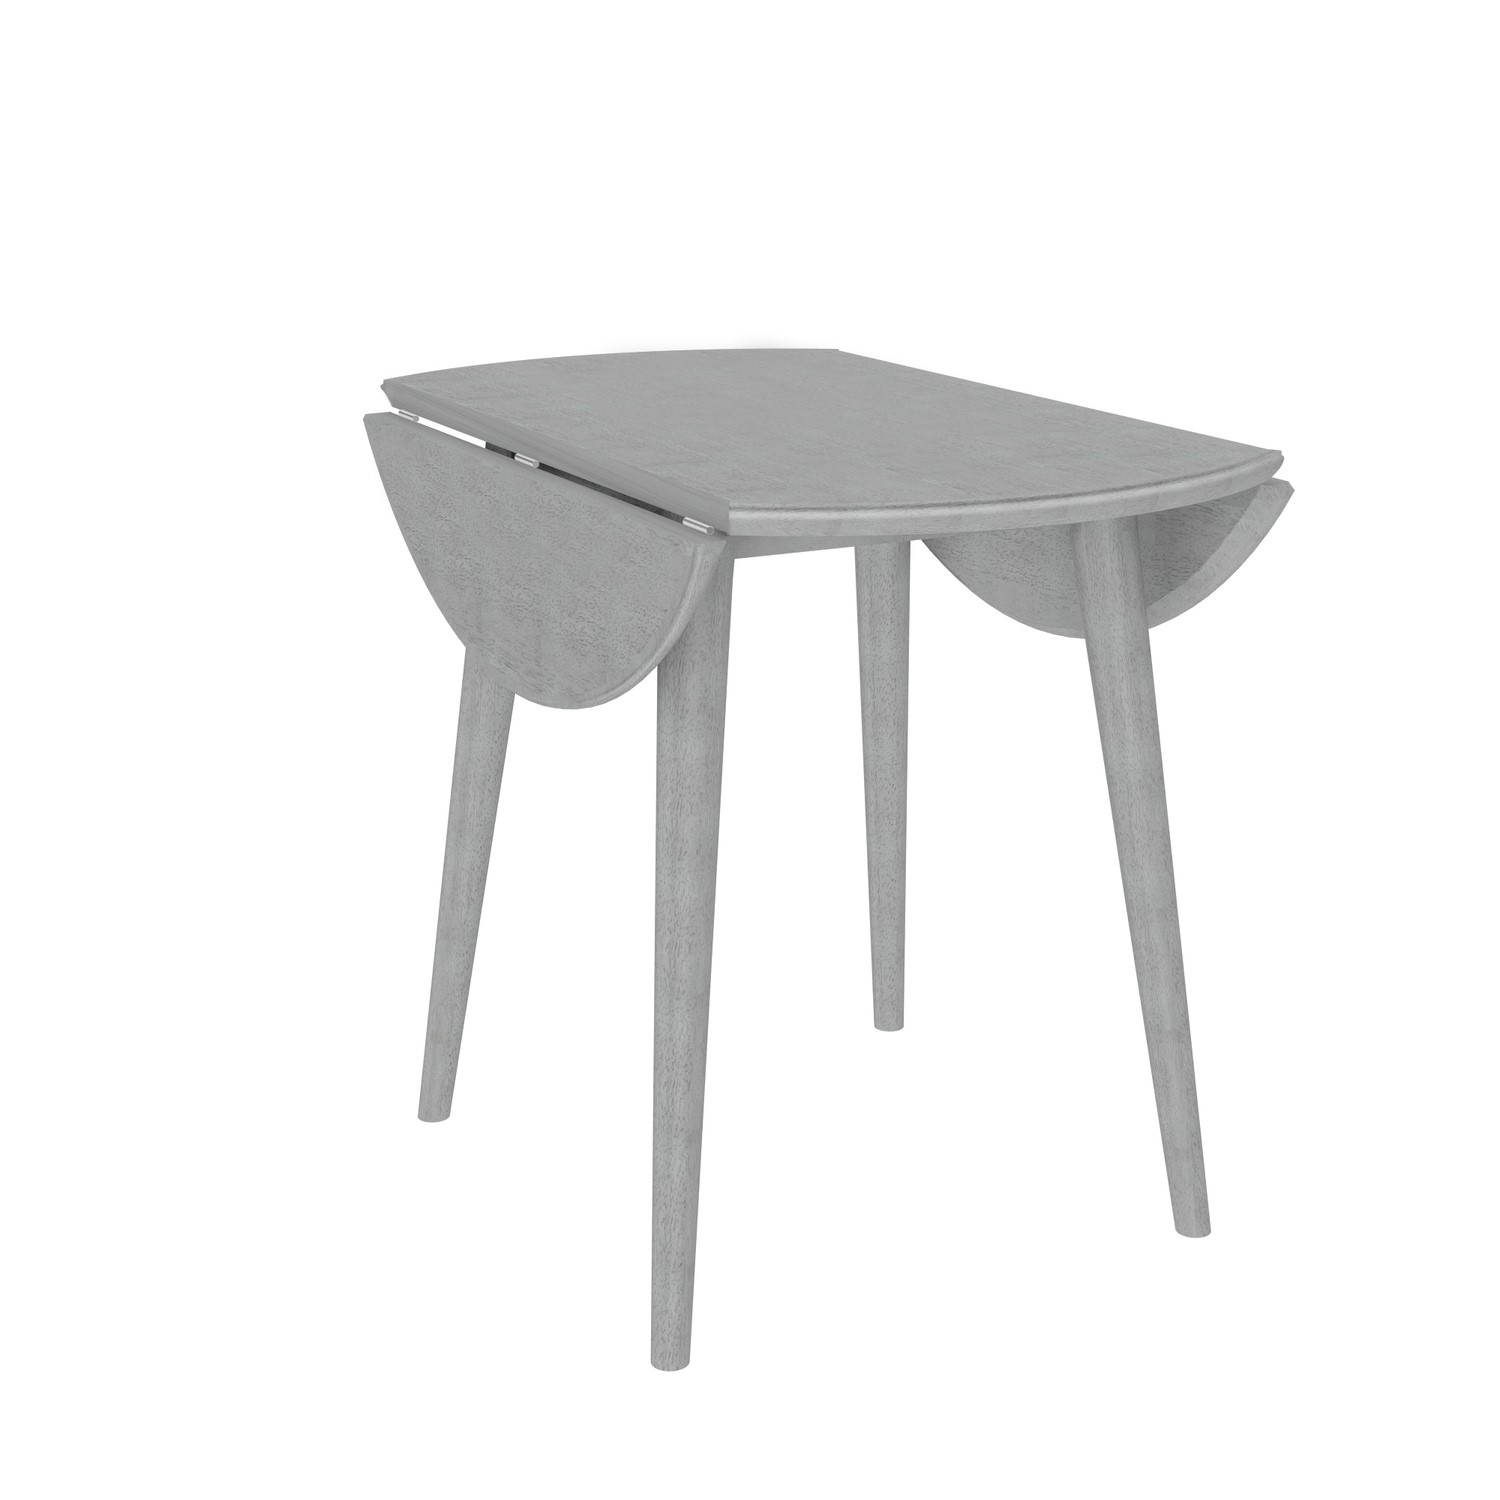 Round Drop Leaf Dining Table In Grey Seats 2 Cami Furniture123